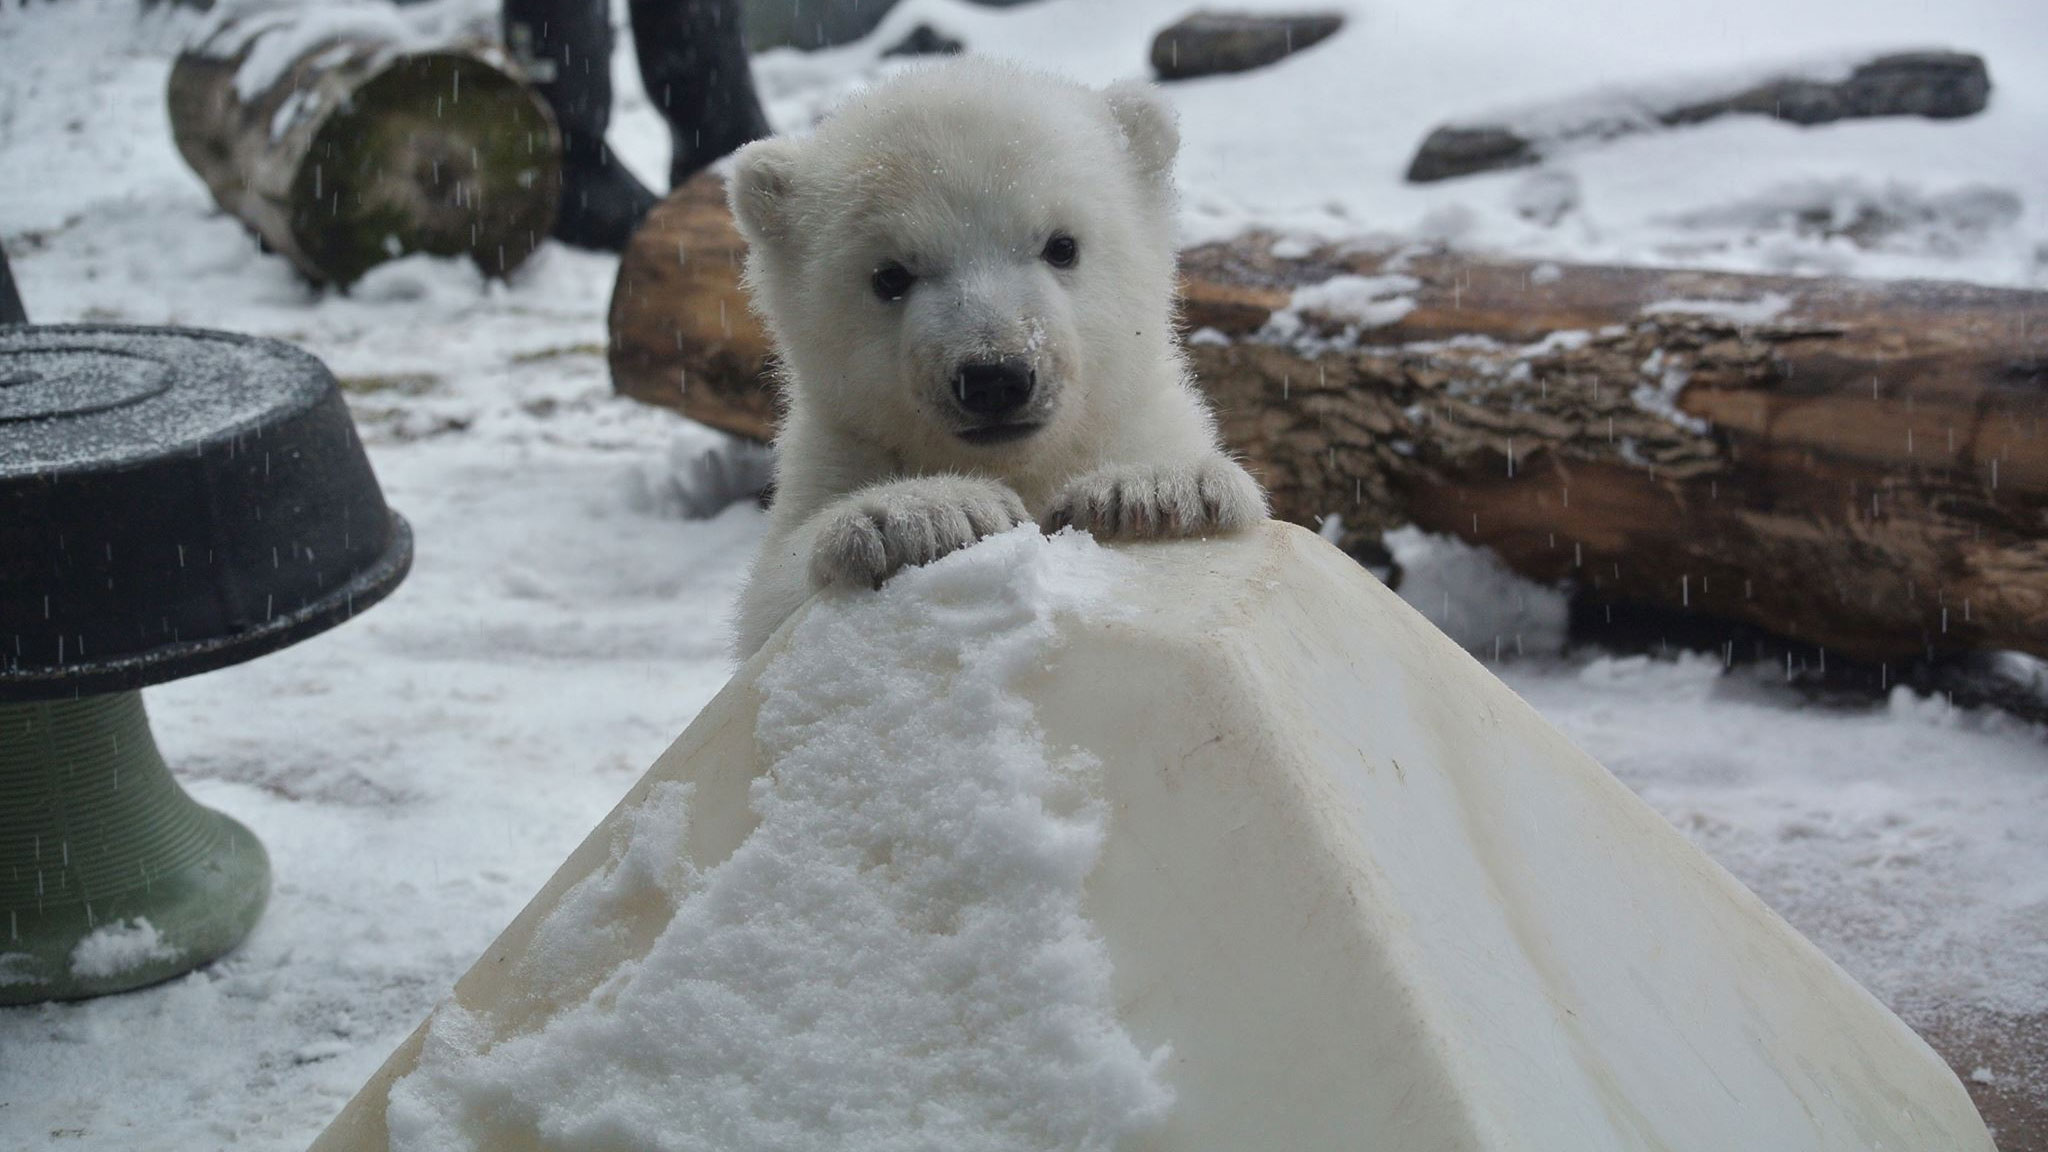 Toronto Zoo's polar bear cub at three months old on Feb. 12, 2016. TORONTO ZOO.